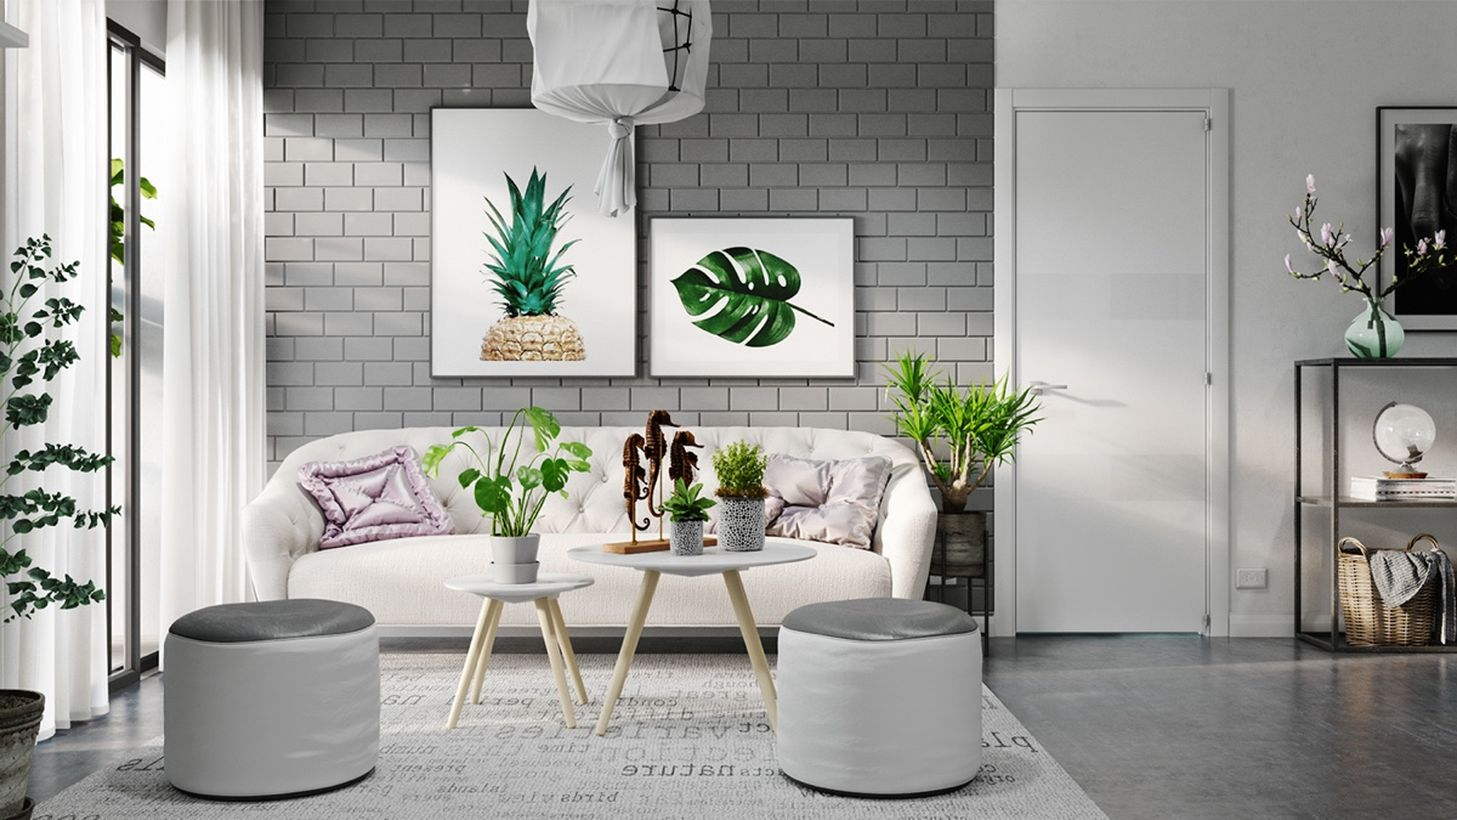 A cozy living room grey home design with white and grey sofas, grey brick walls, house plants, painting hung on the walls, and white curtains